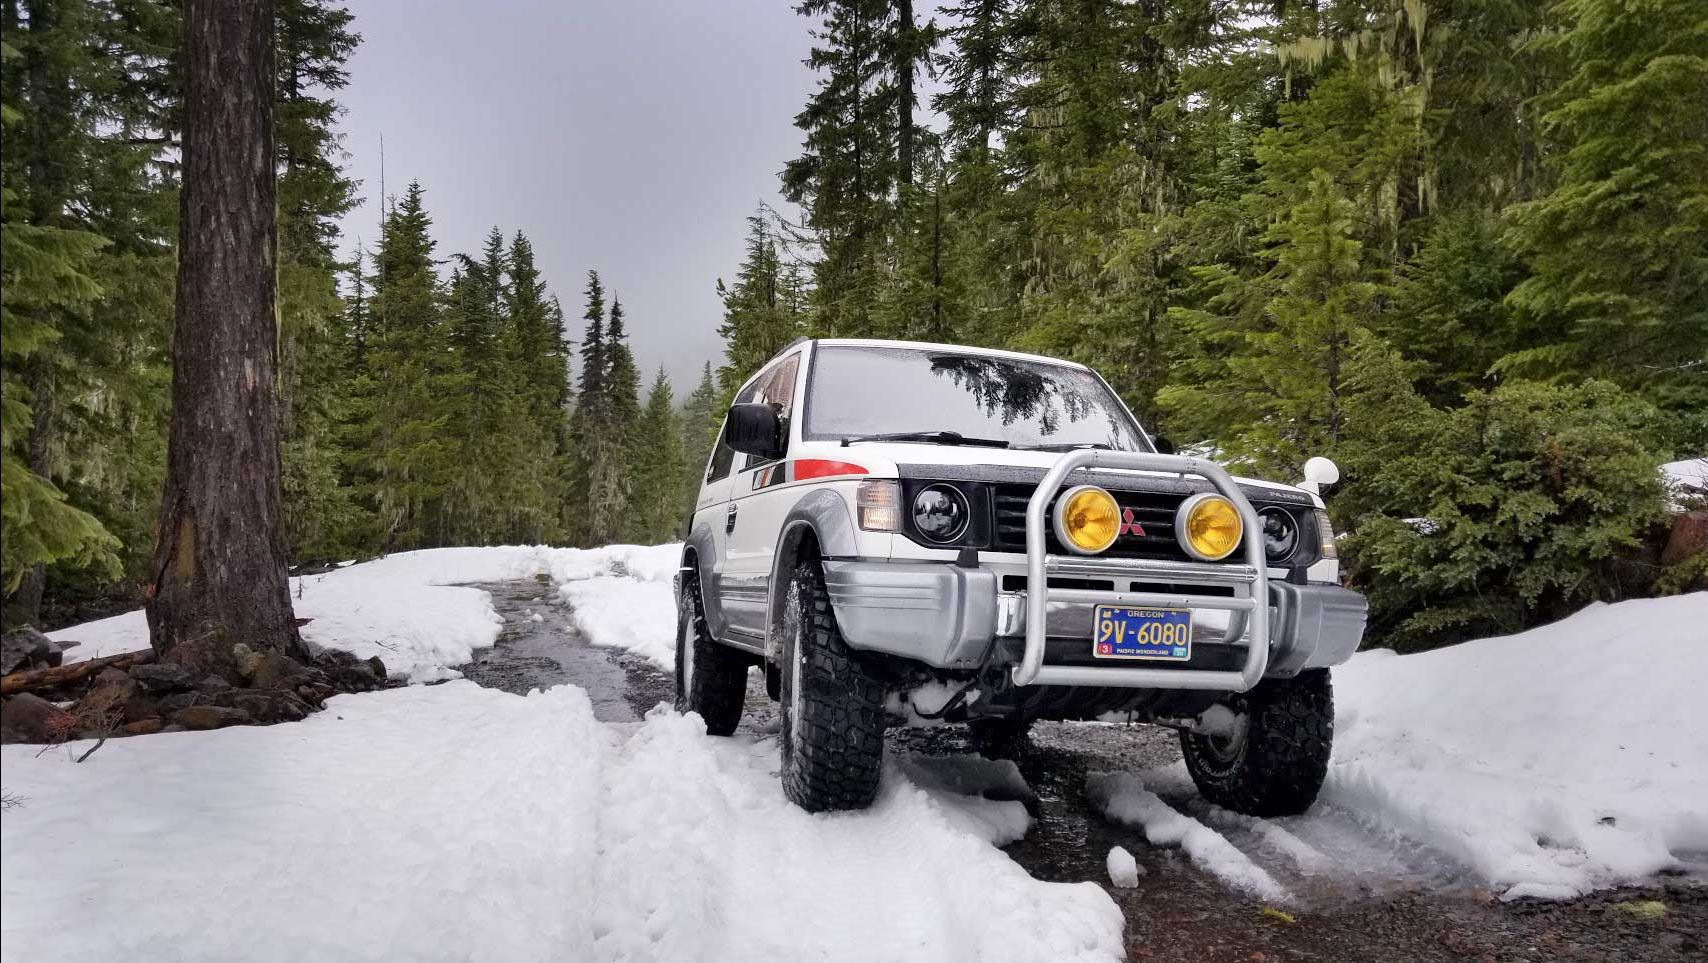 Mitsubishi Pajero in the snow